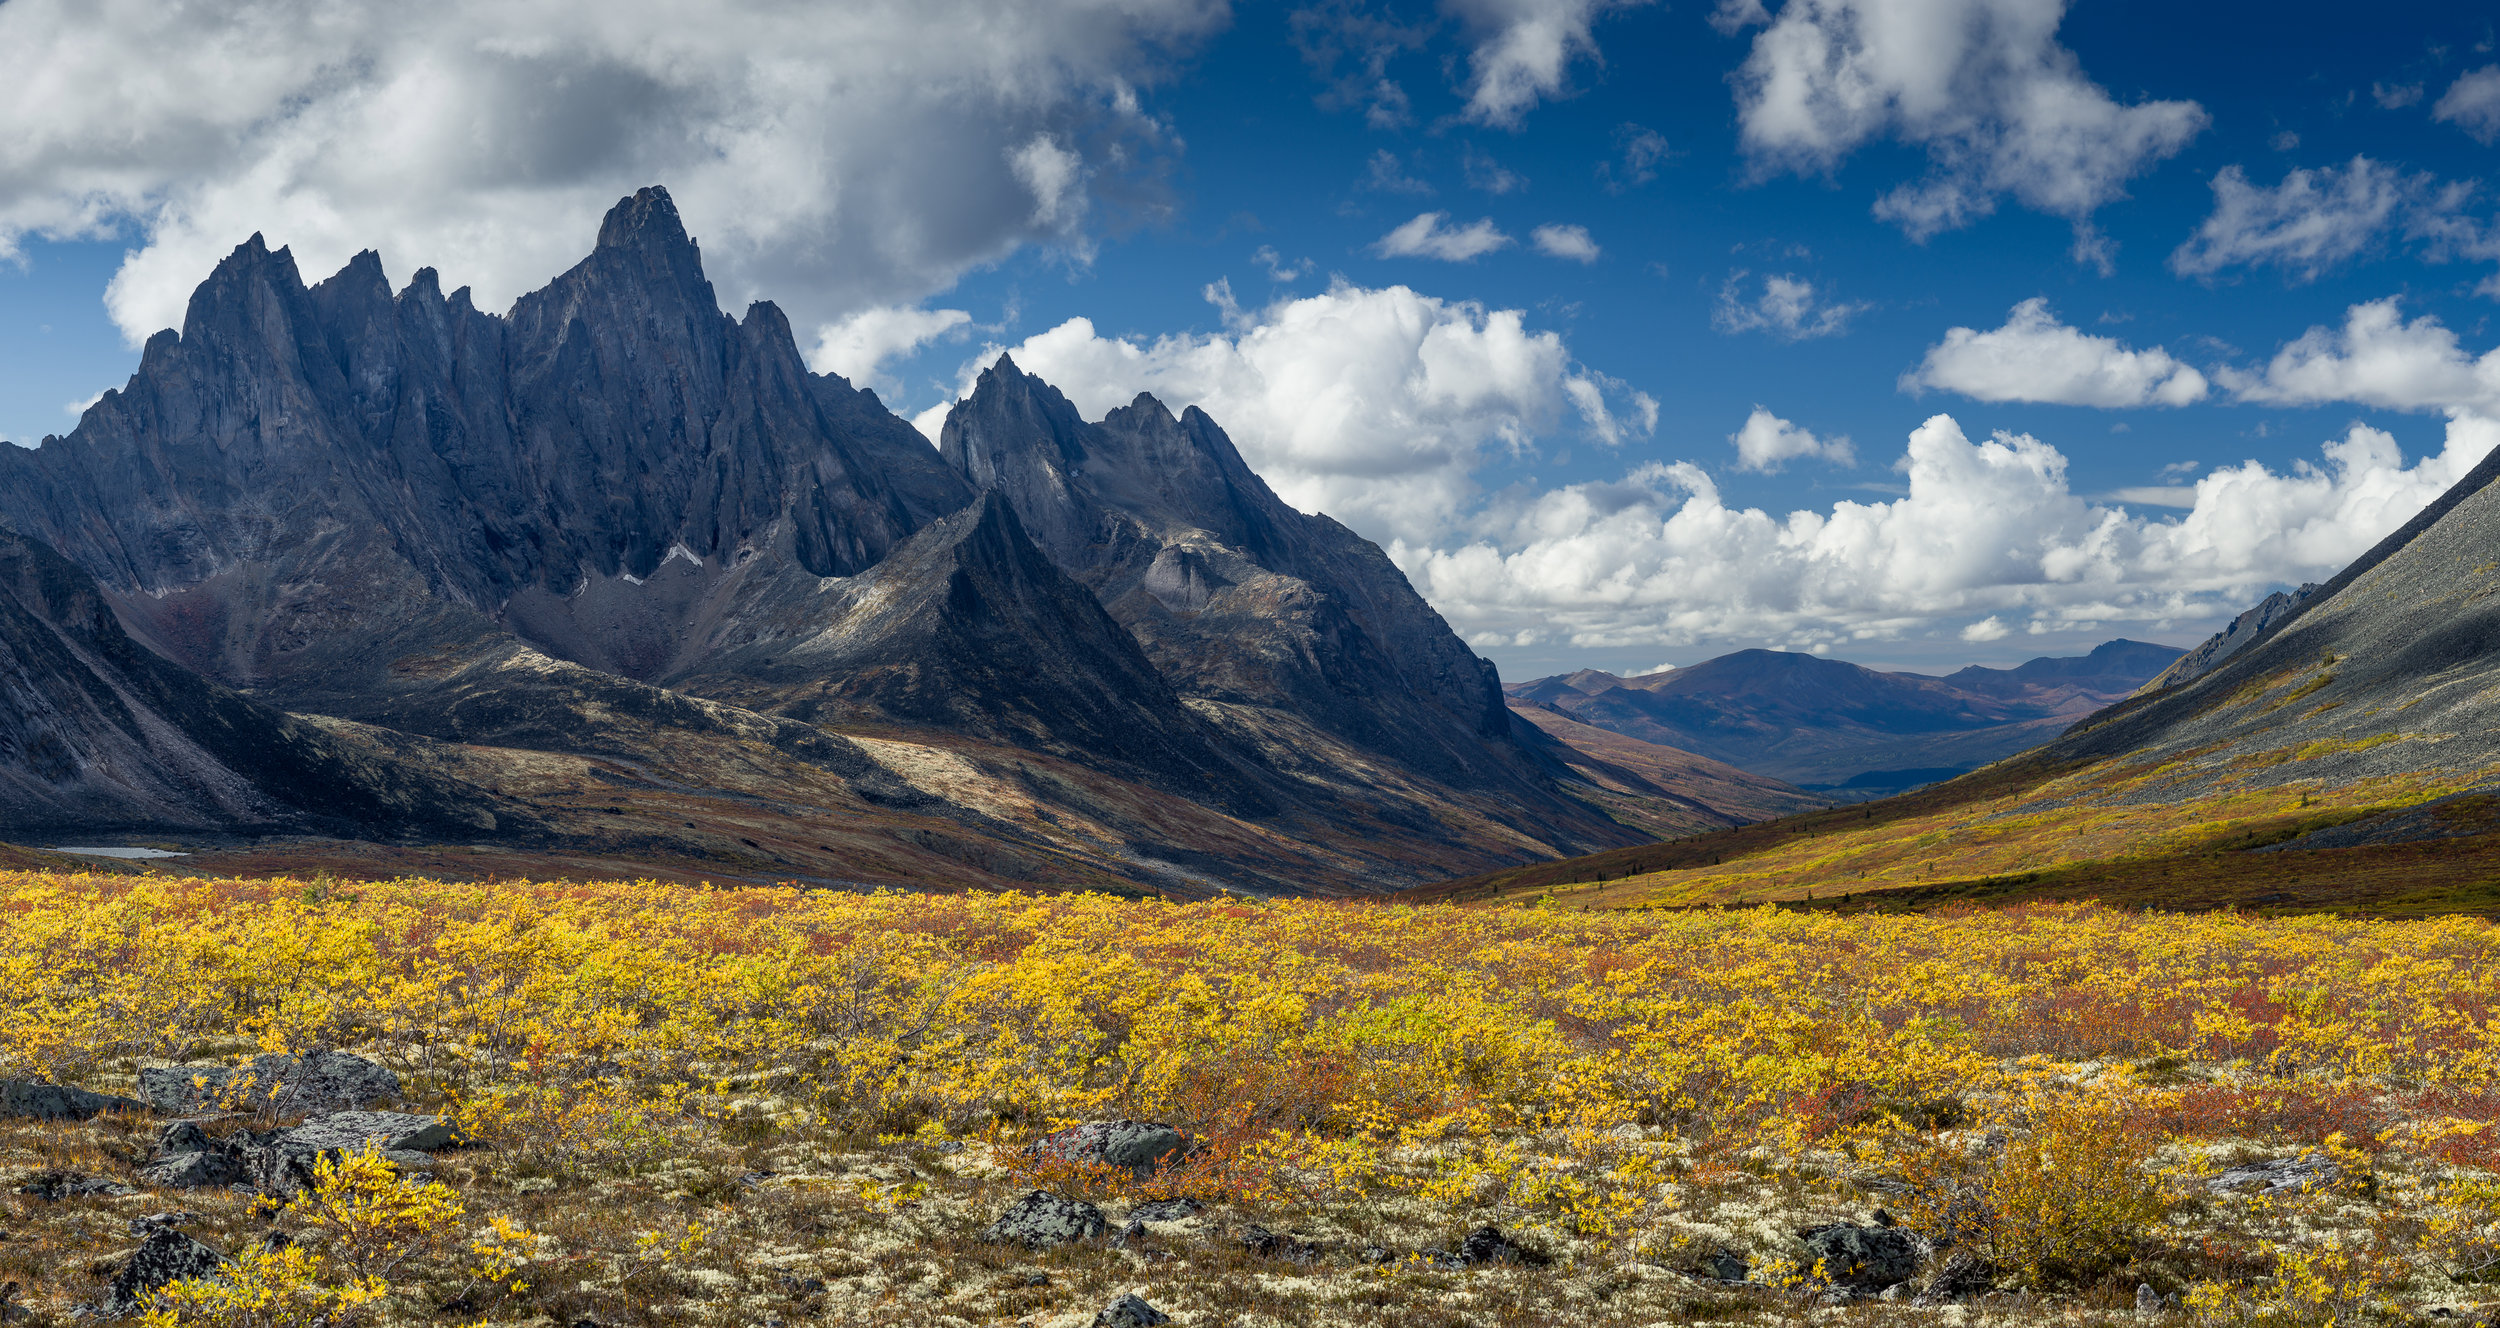 photo_workshop_yukon_tombstone-1.jpg